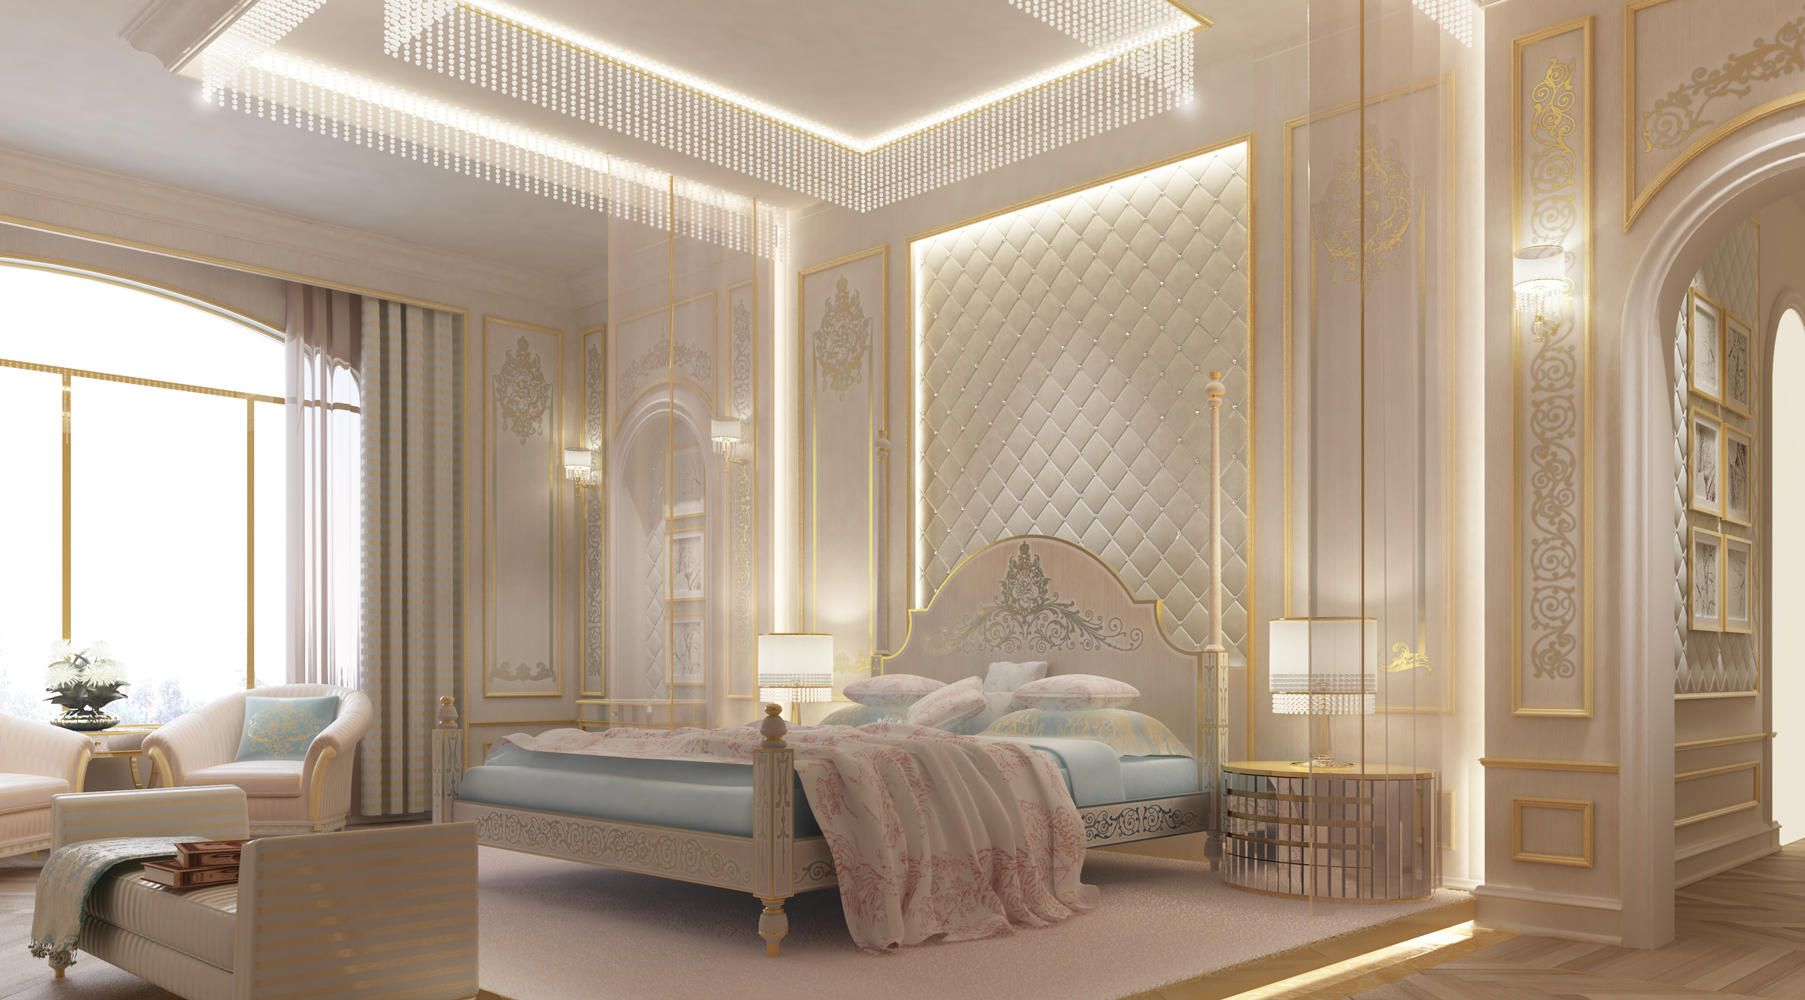 Dubai bedroom bedroom design abu dhabi d for Interieur designer